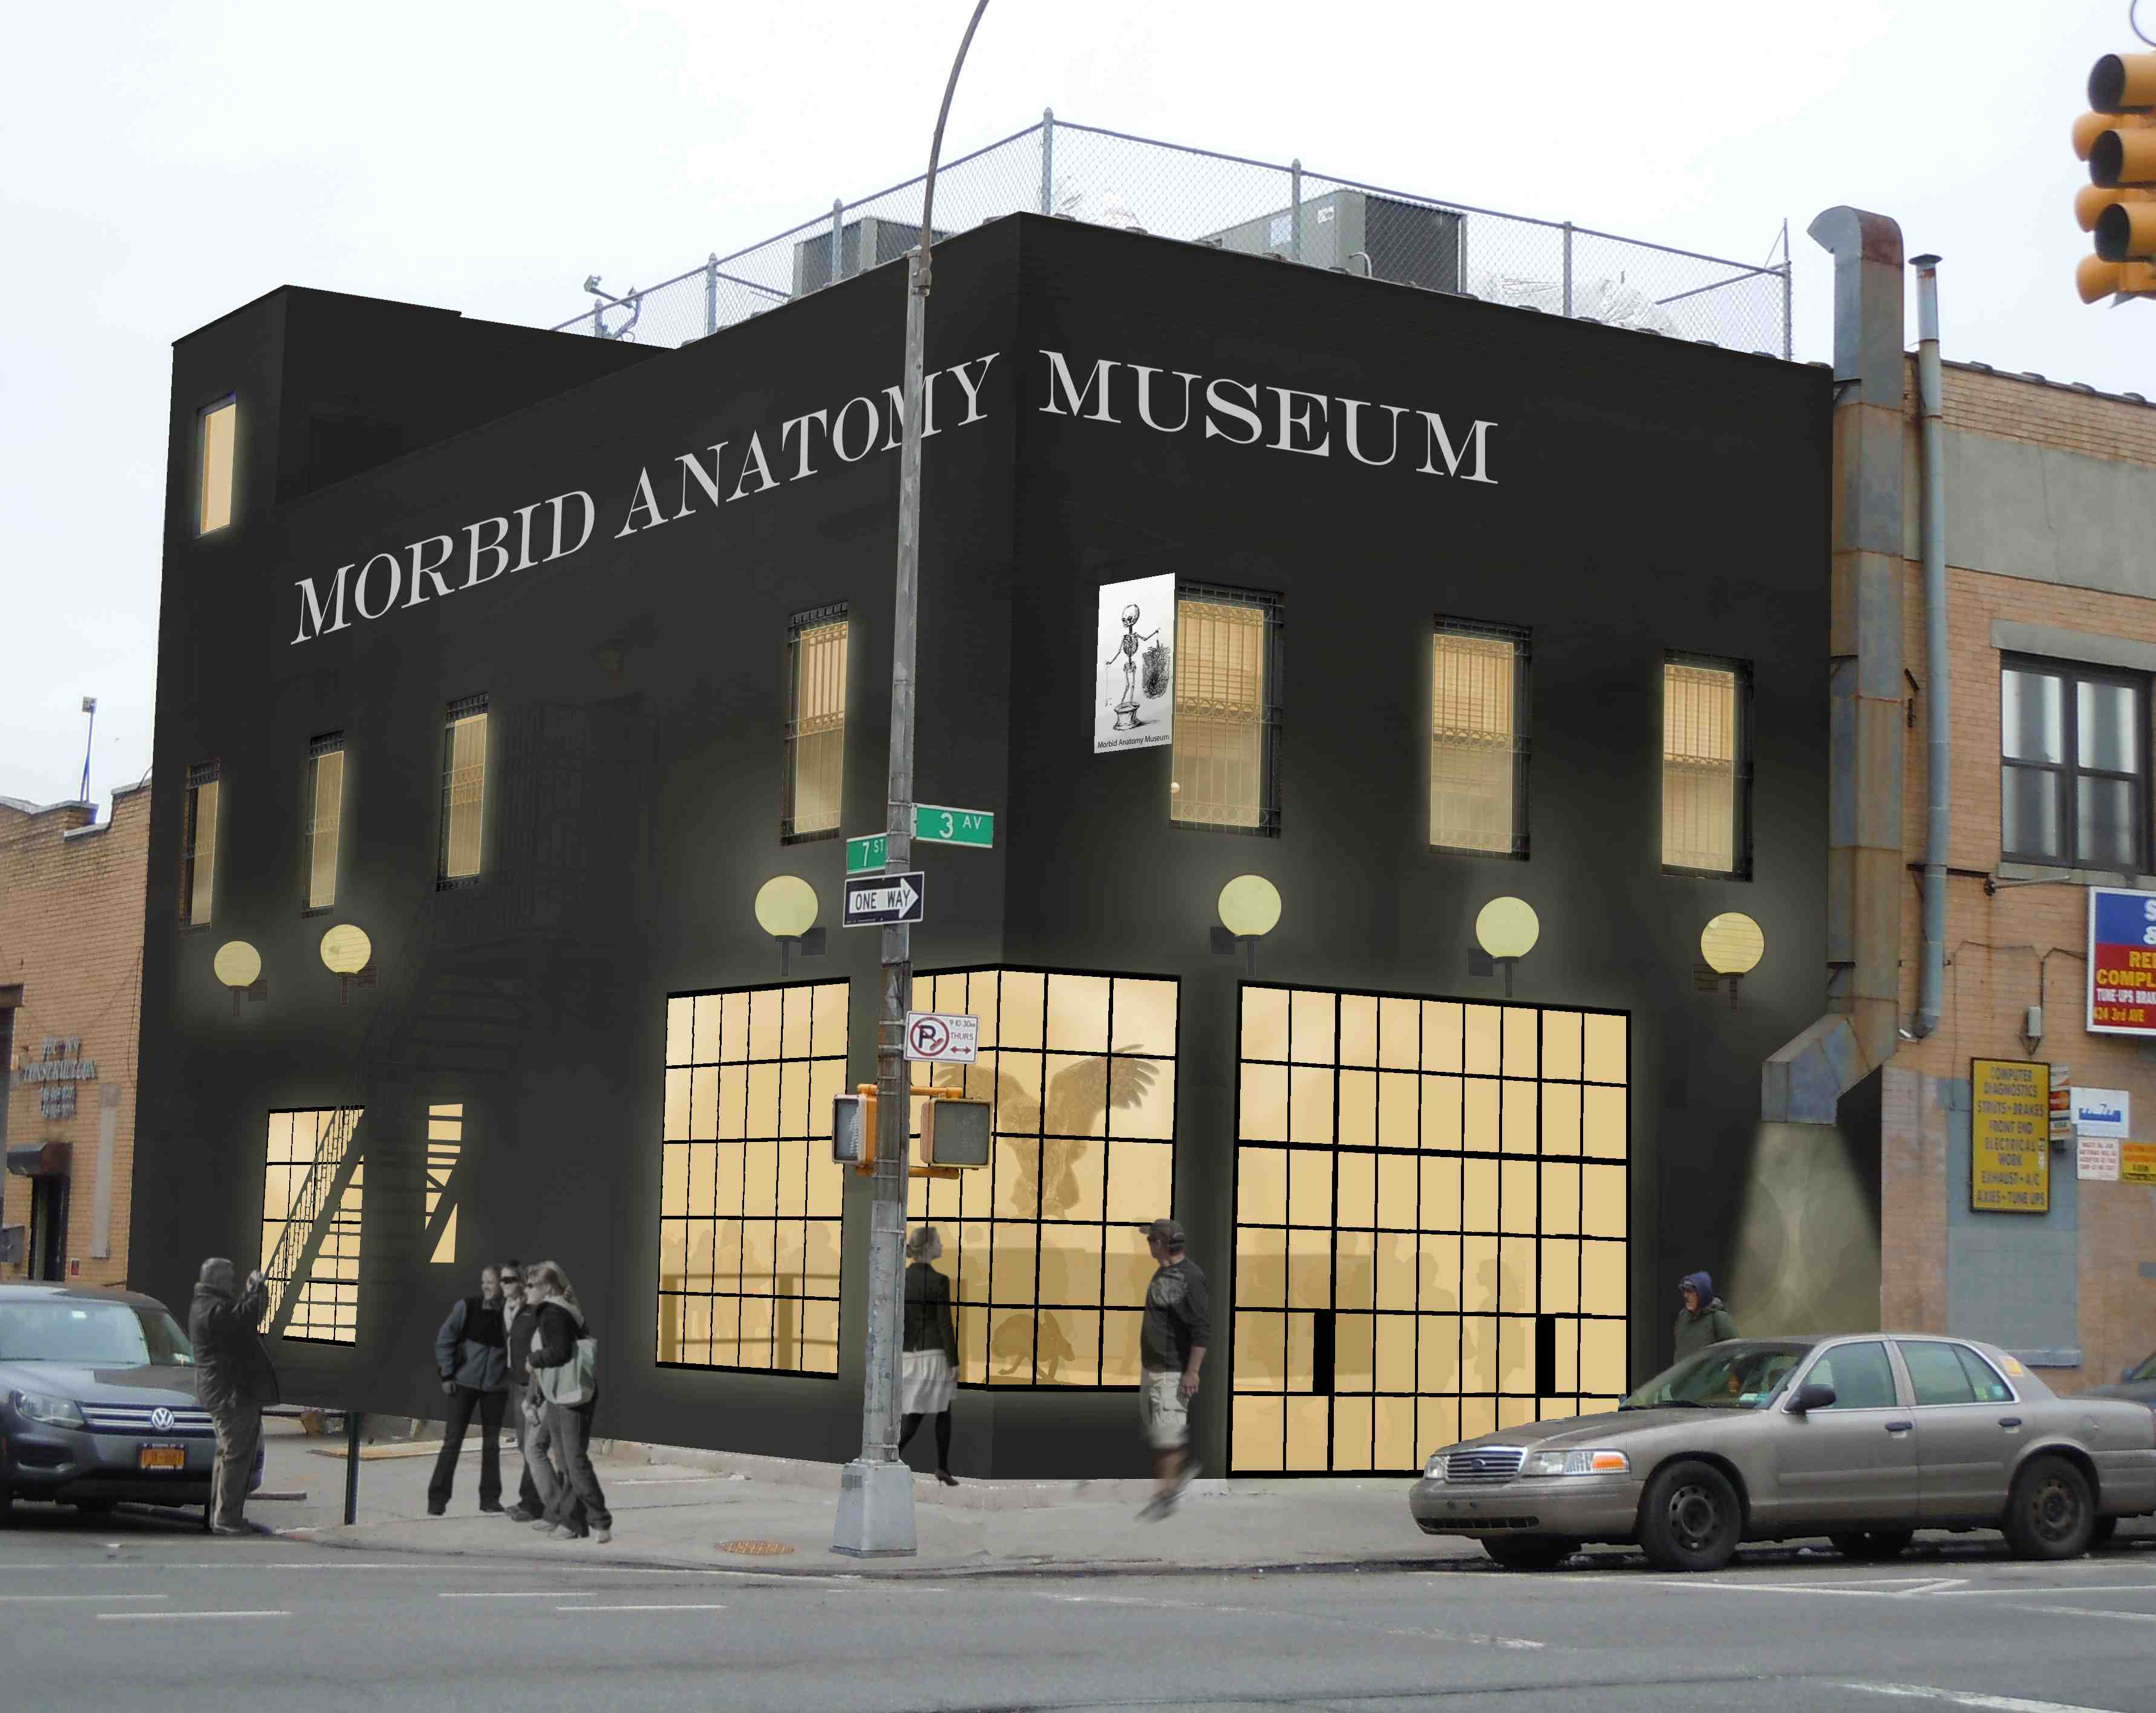 Morbid Anatomy Museum New York